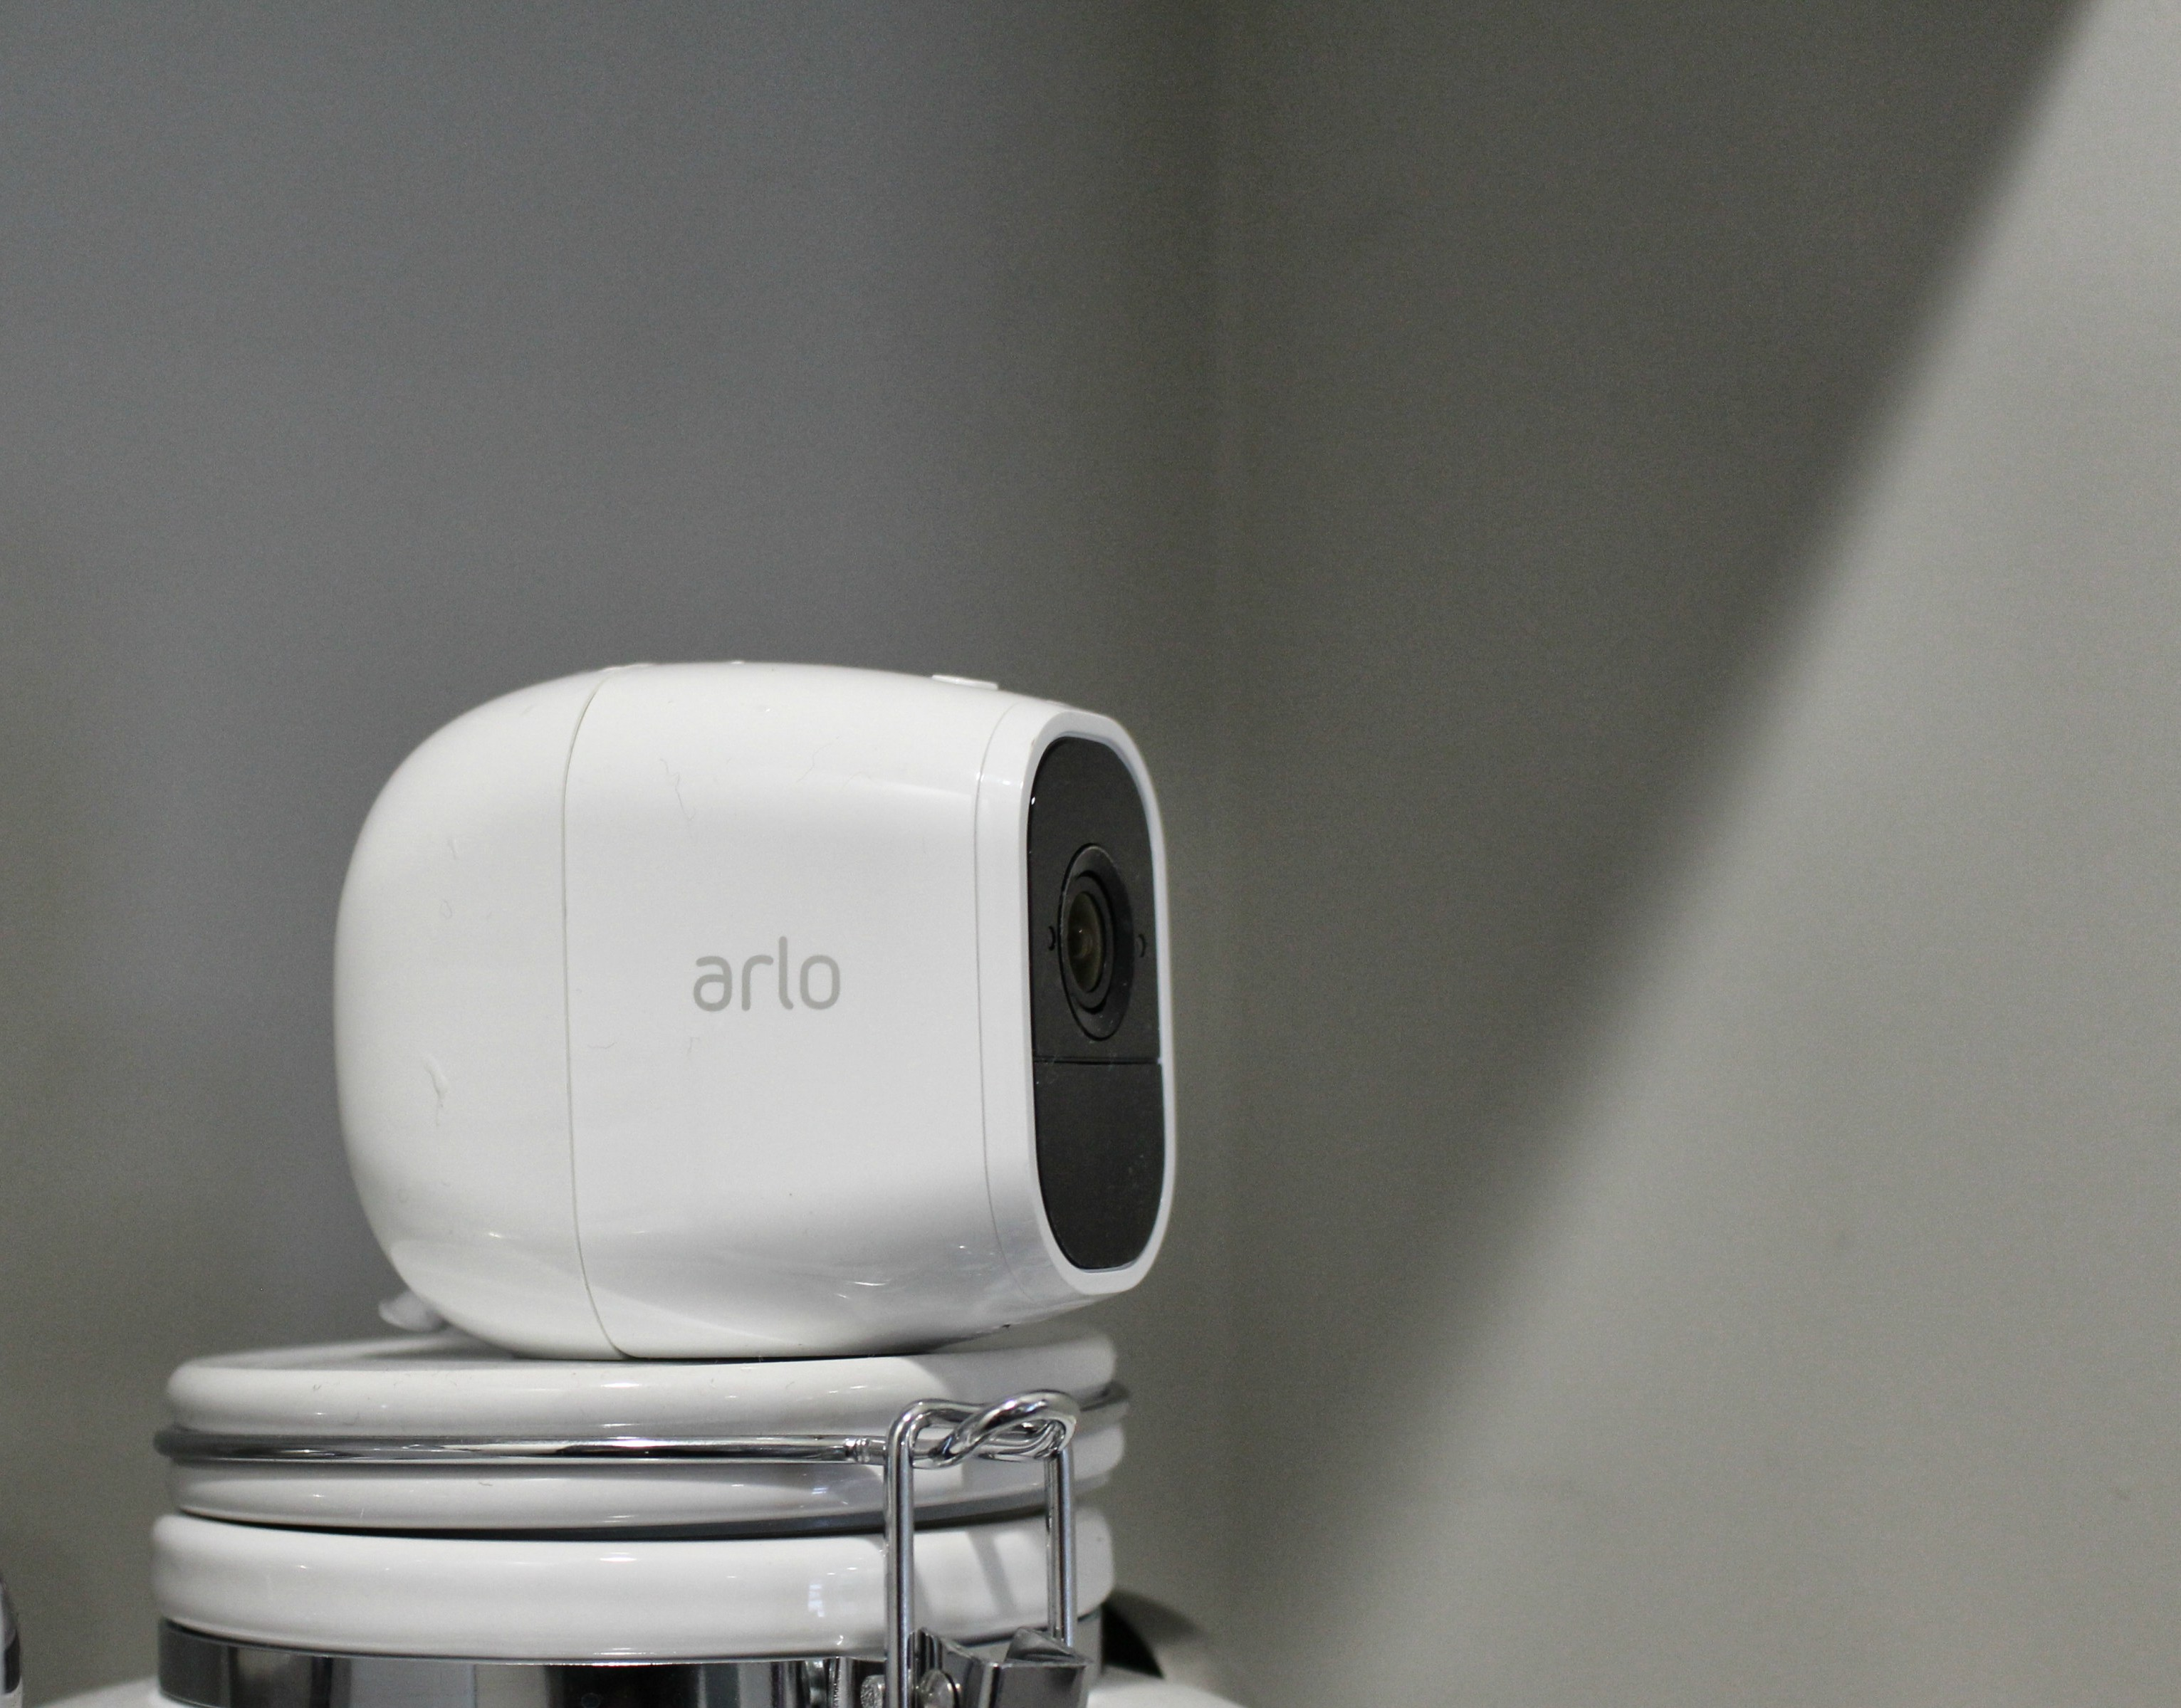 Arlo Pro 2 Security System - Tech Review | Busted Wallet